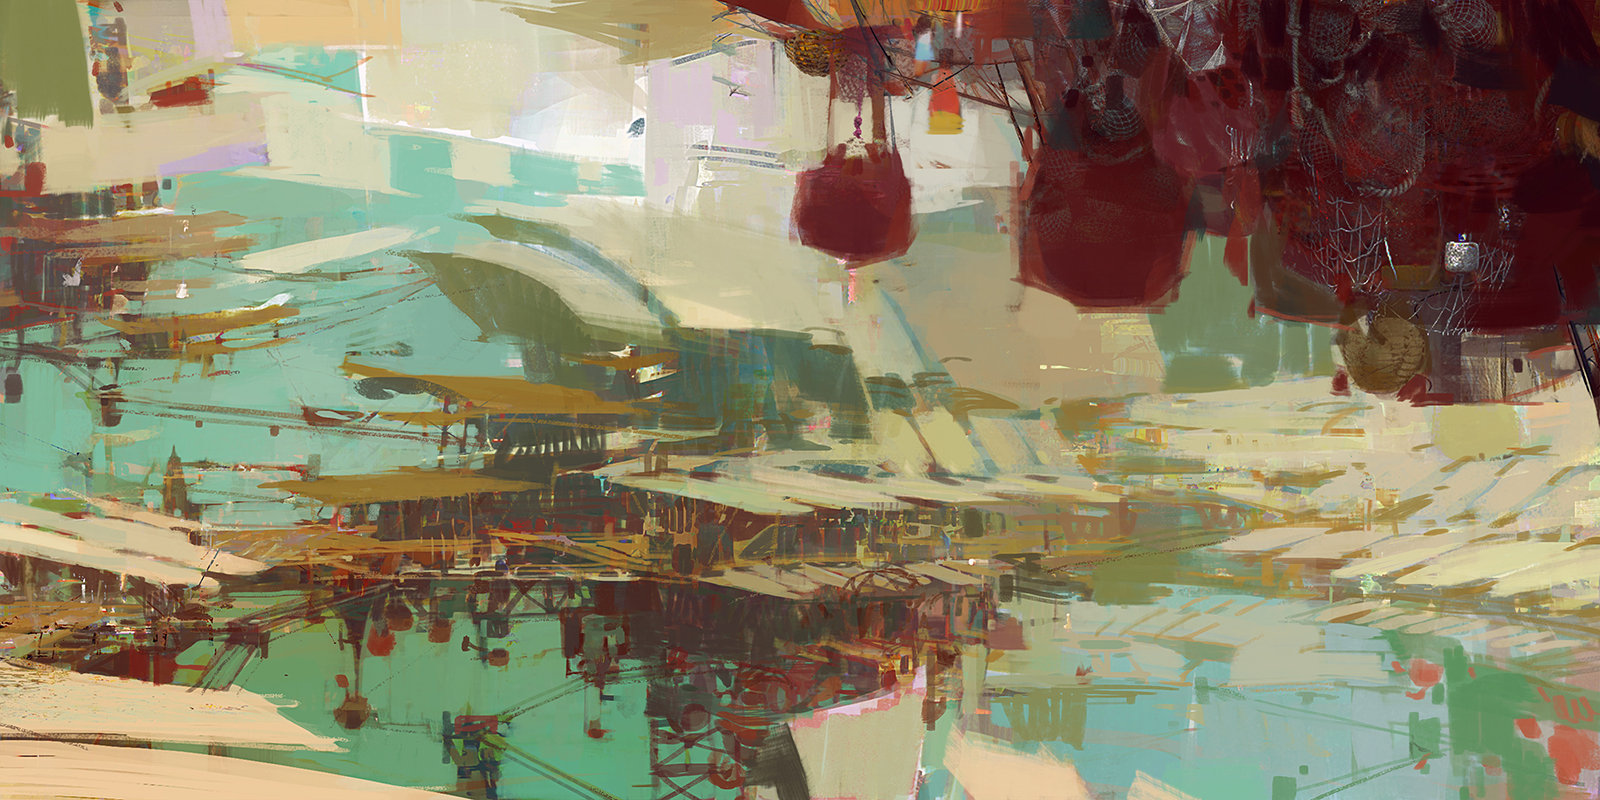 theo prins digital painting concept art guild wars 2 Kite City 3